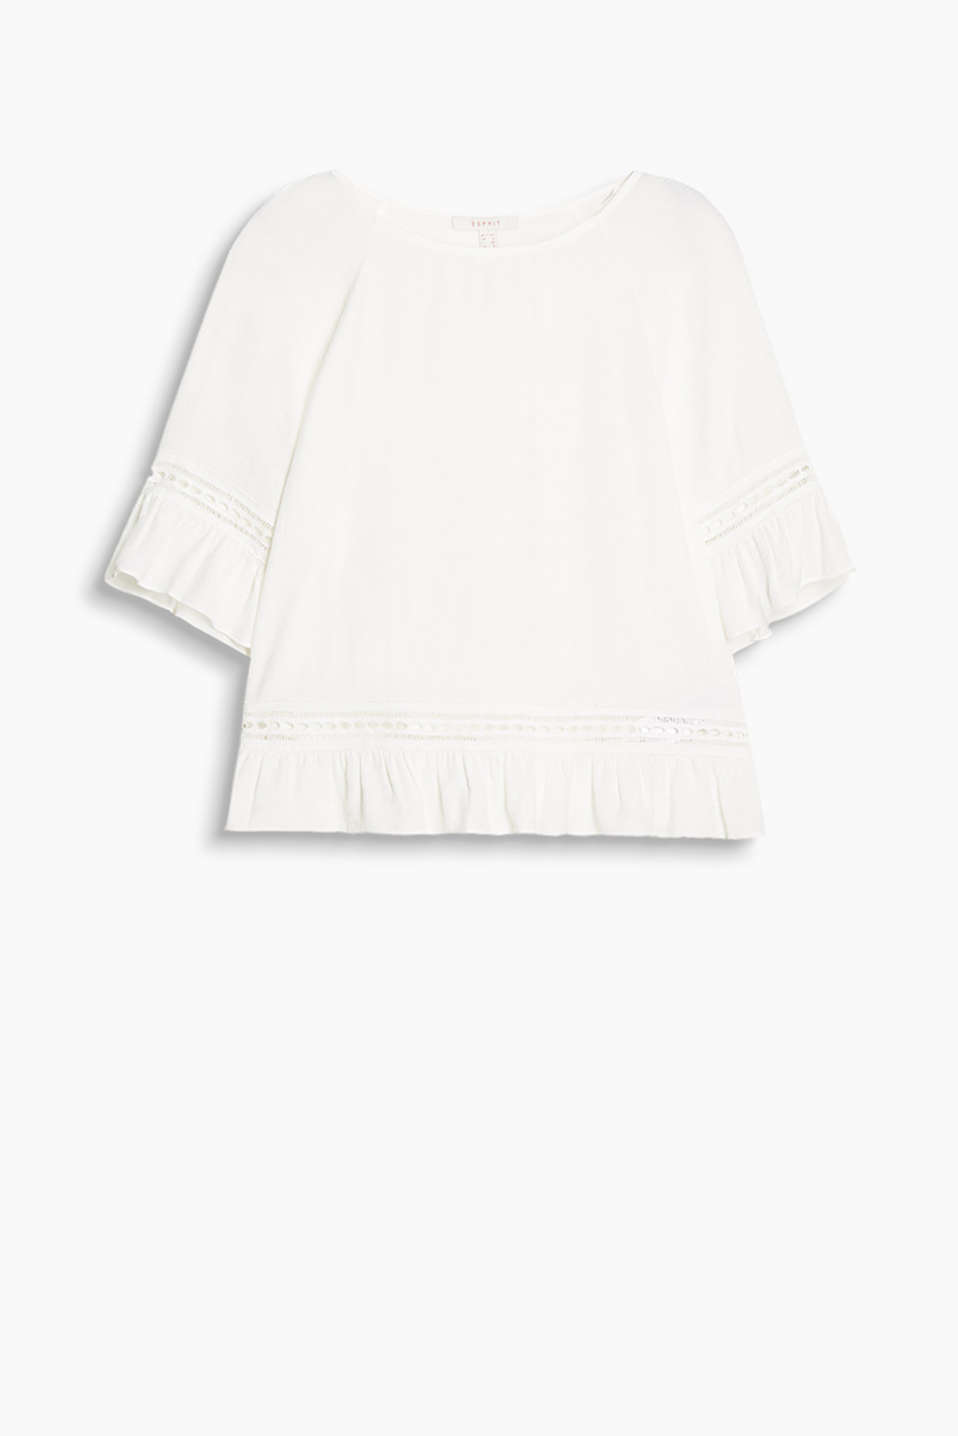 Flowing, finely textured blouse in a tunic style with crocheted details and frills